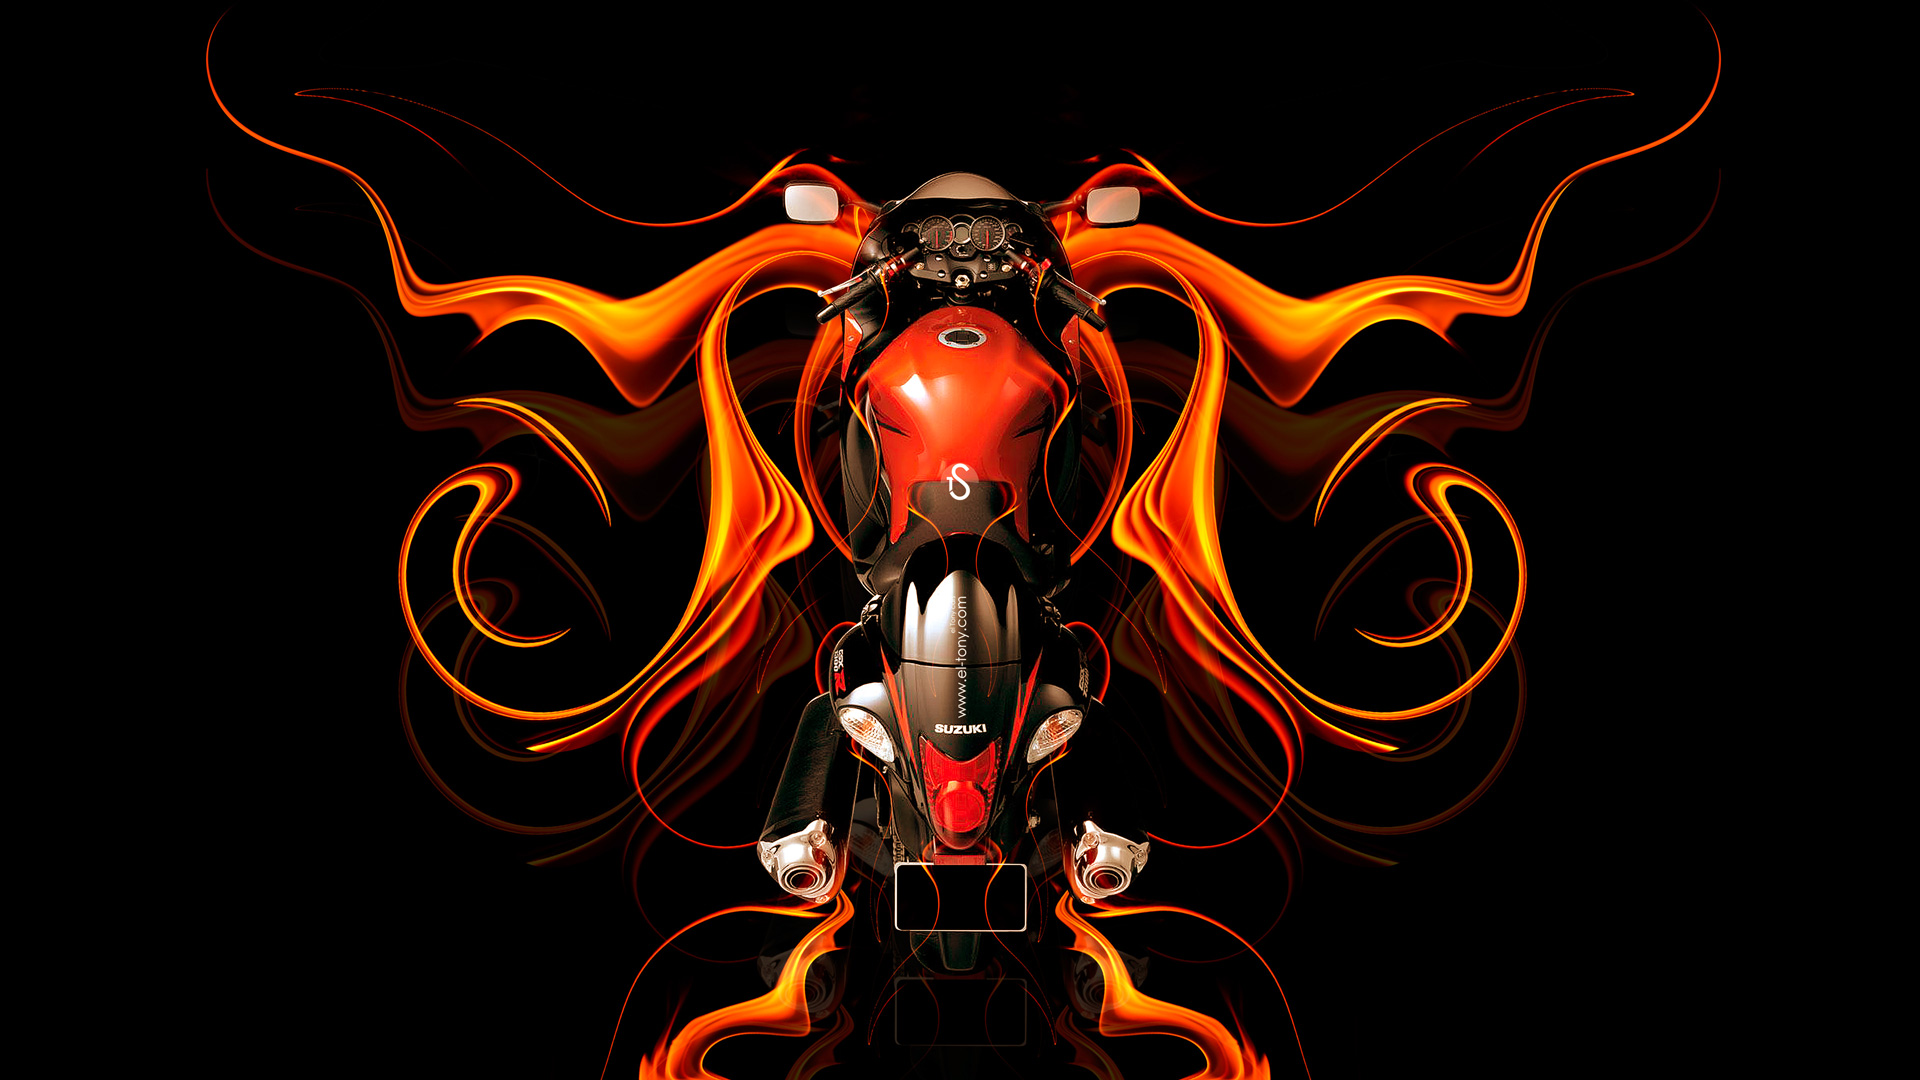 Moto-Suzuki-Hayabusa-BackUp-Super-Fire-Abstract-Bike-2014-Photoshop-HD-Wallpapers-design-by-Tony-Kokhan-[www.el-tony.com]